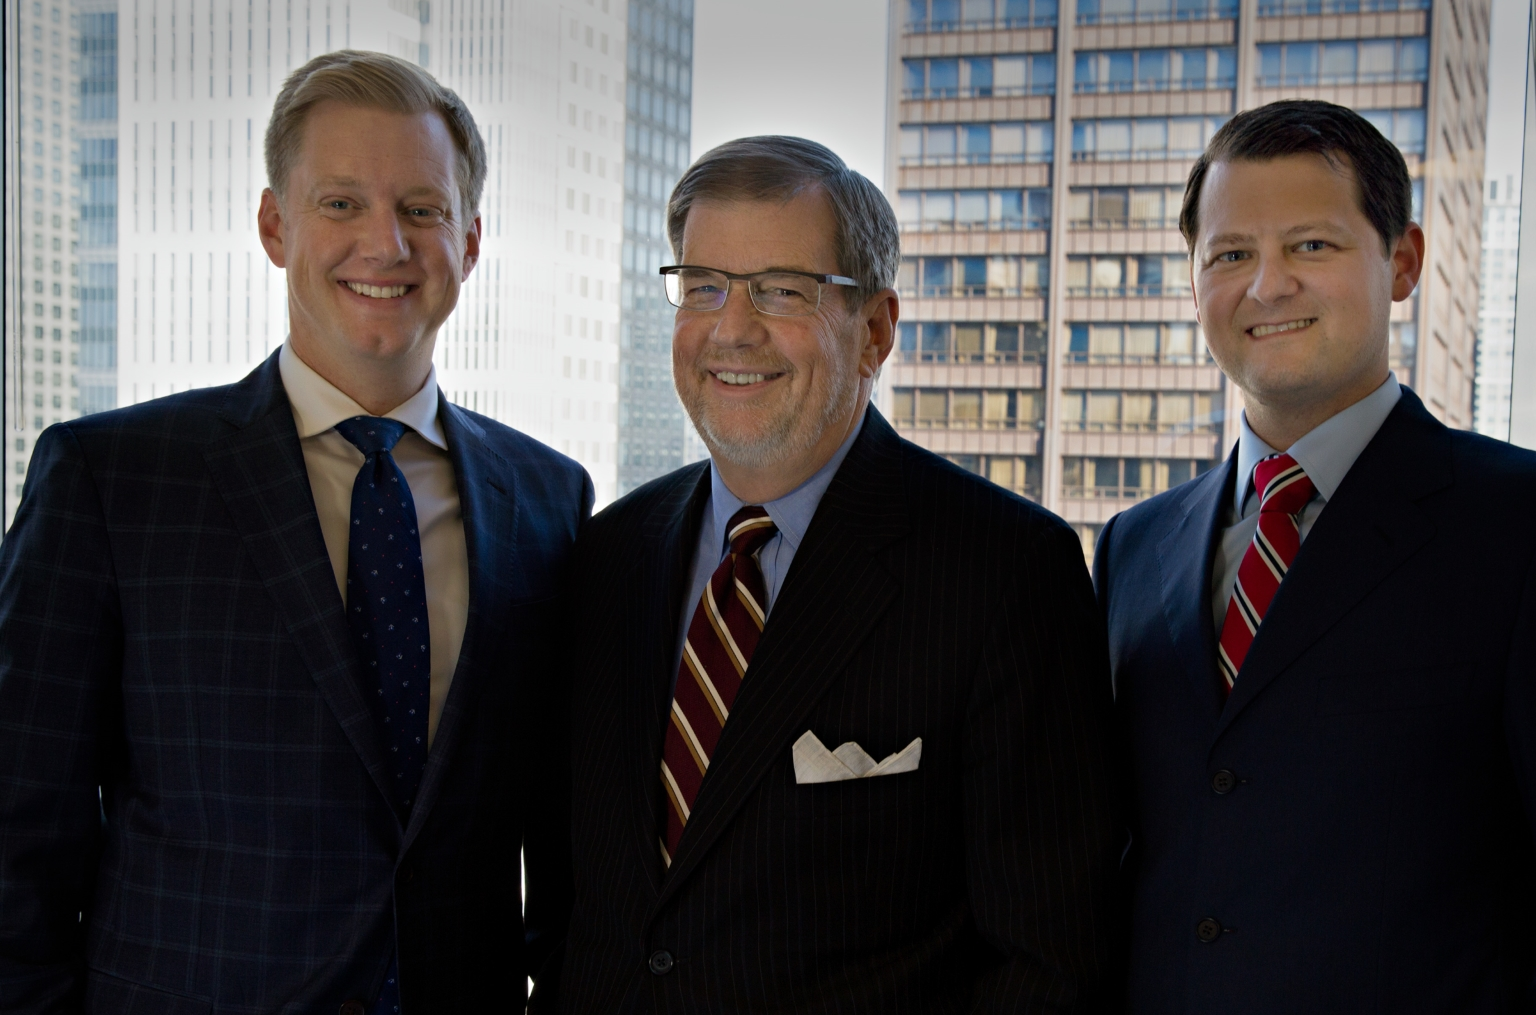 McCallister Law Group provides Hernia Mesh representation in